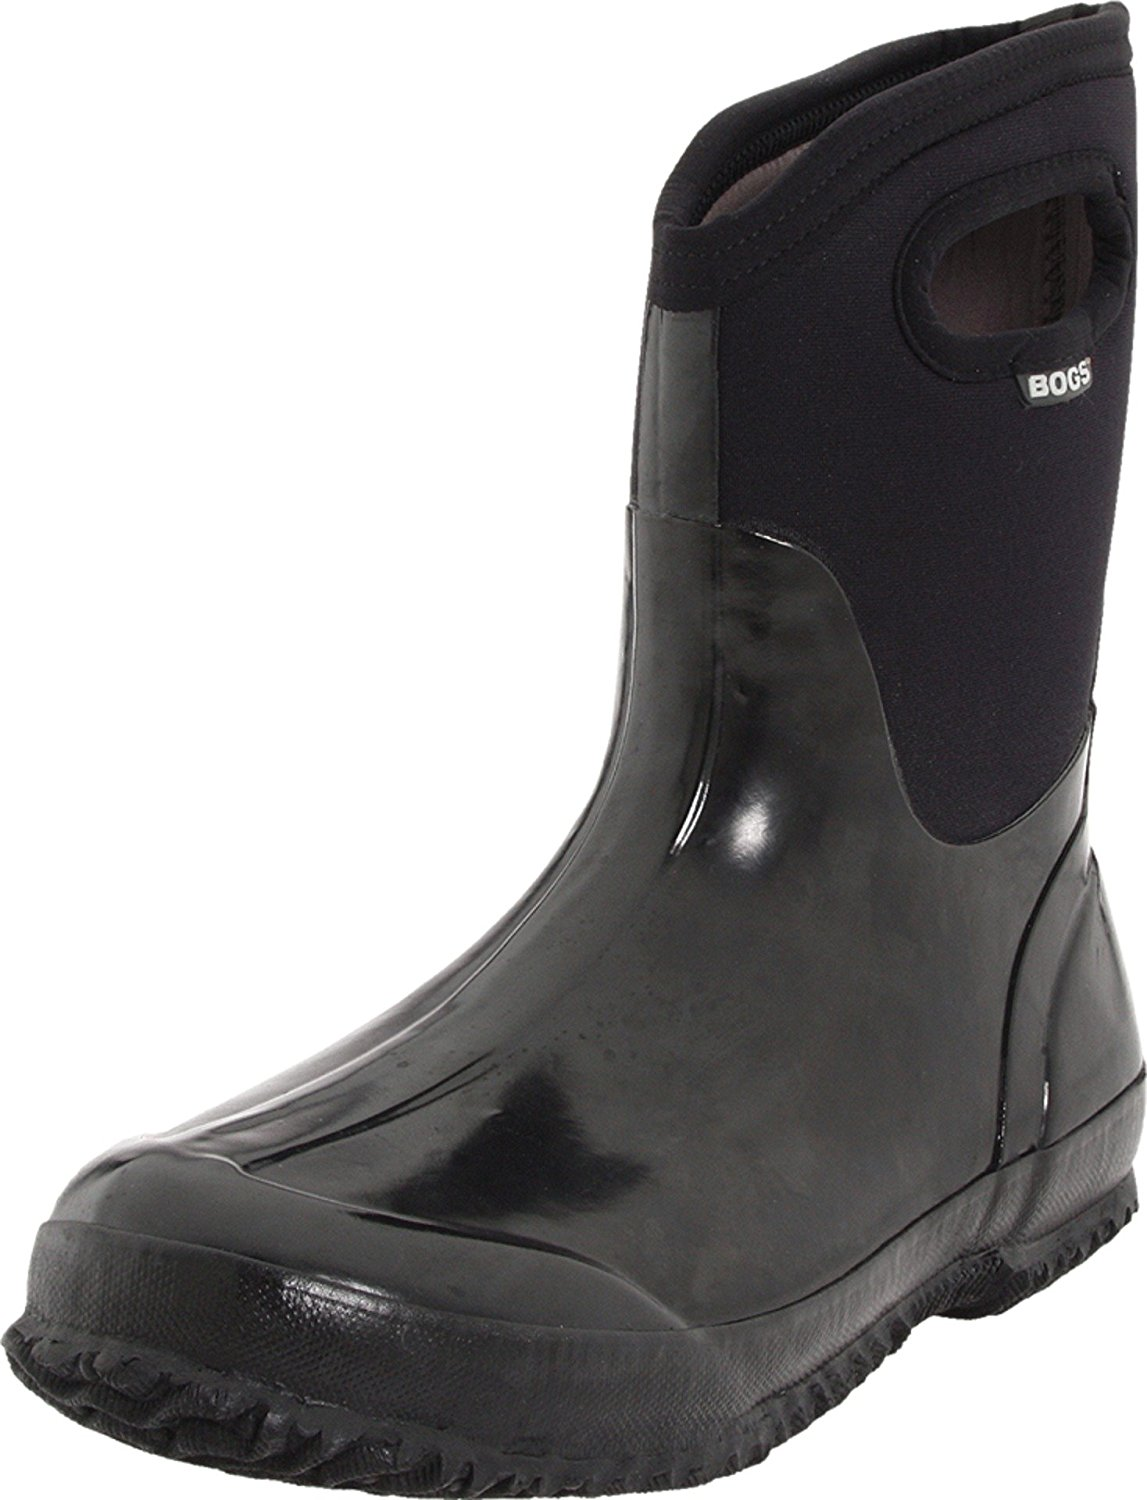 5b703fdb52 Cheap Bogs Mid Boot, find Bogs Mid Boot deals on line at Alibaba.com